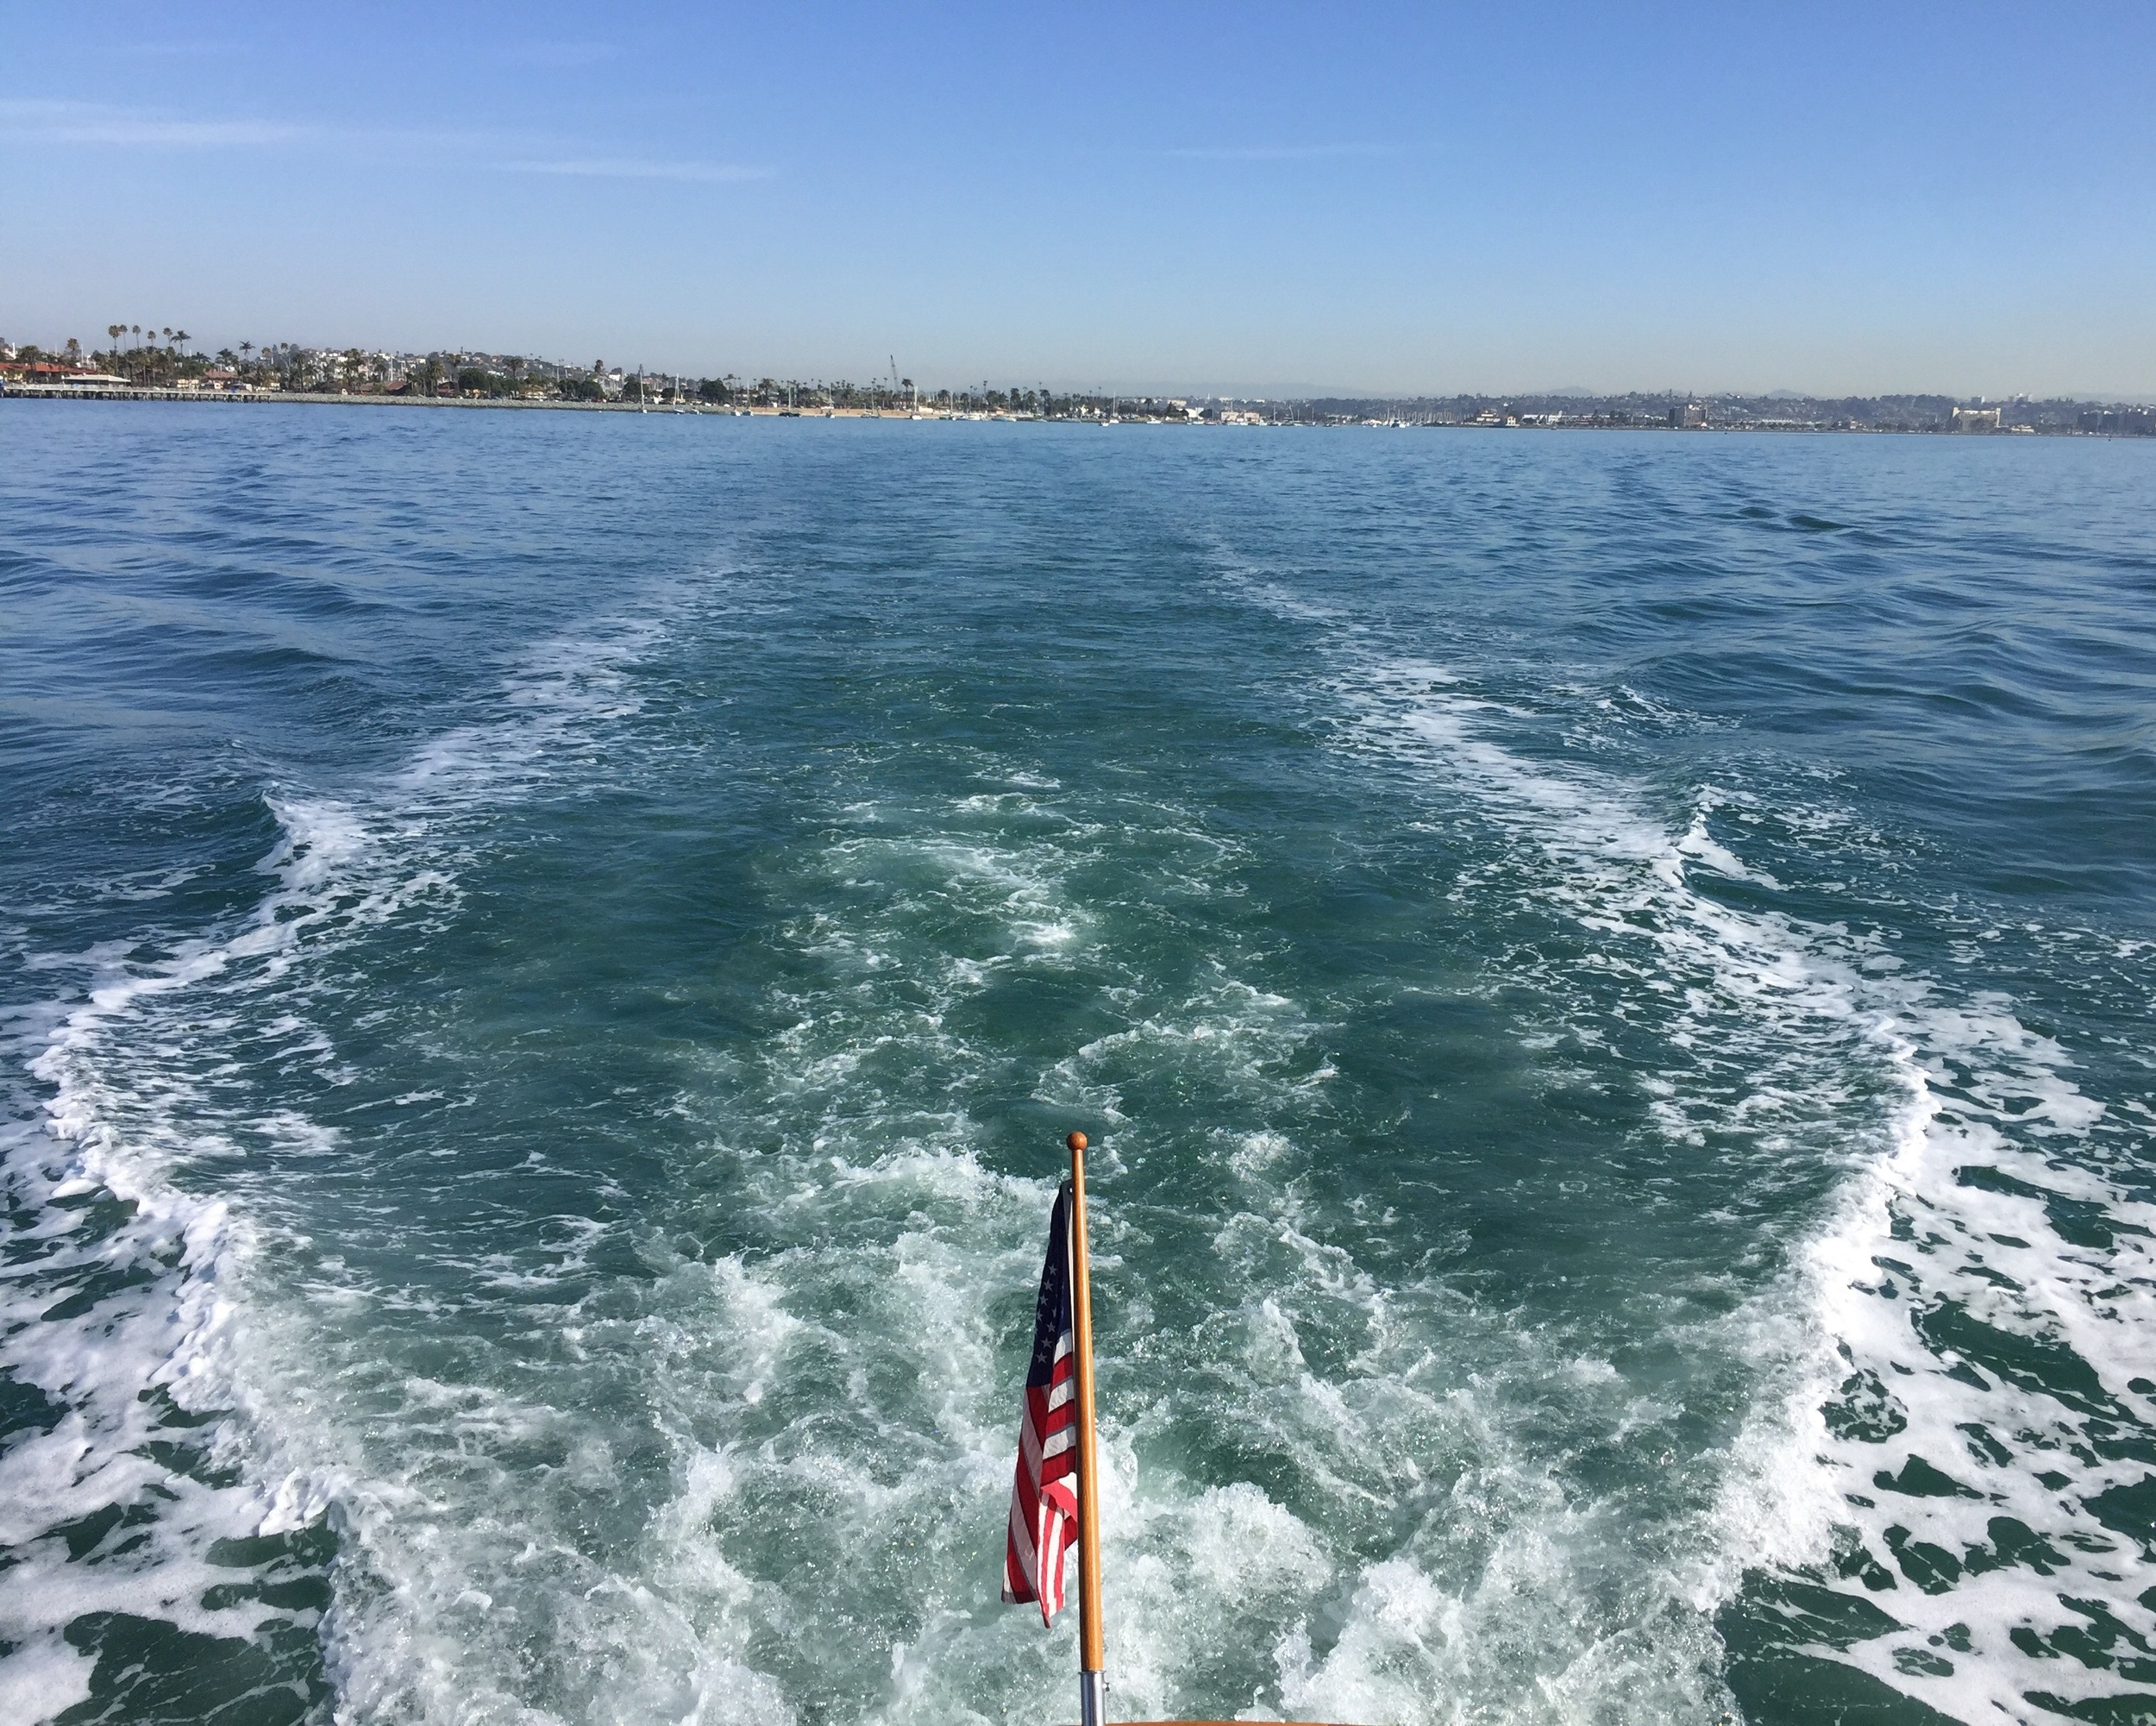 We documented a weekend-long insiders' snapshot of San Diego across Hilton HHonors' social media channels, offering visitors tips and suggestions to maximize their stay. First up: whale watching.